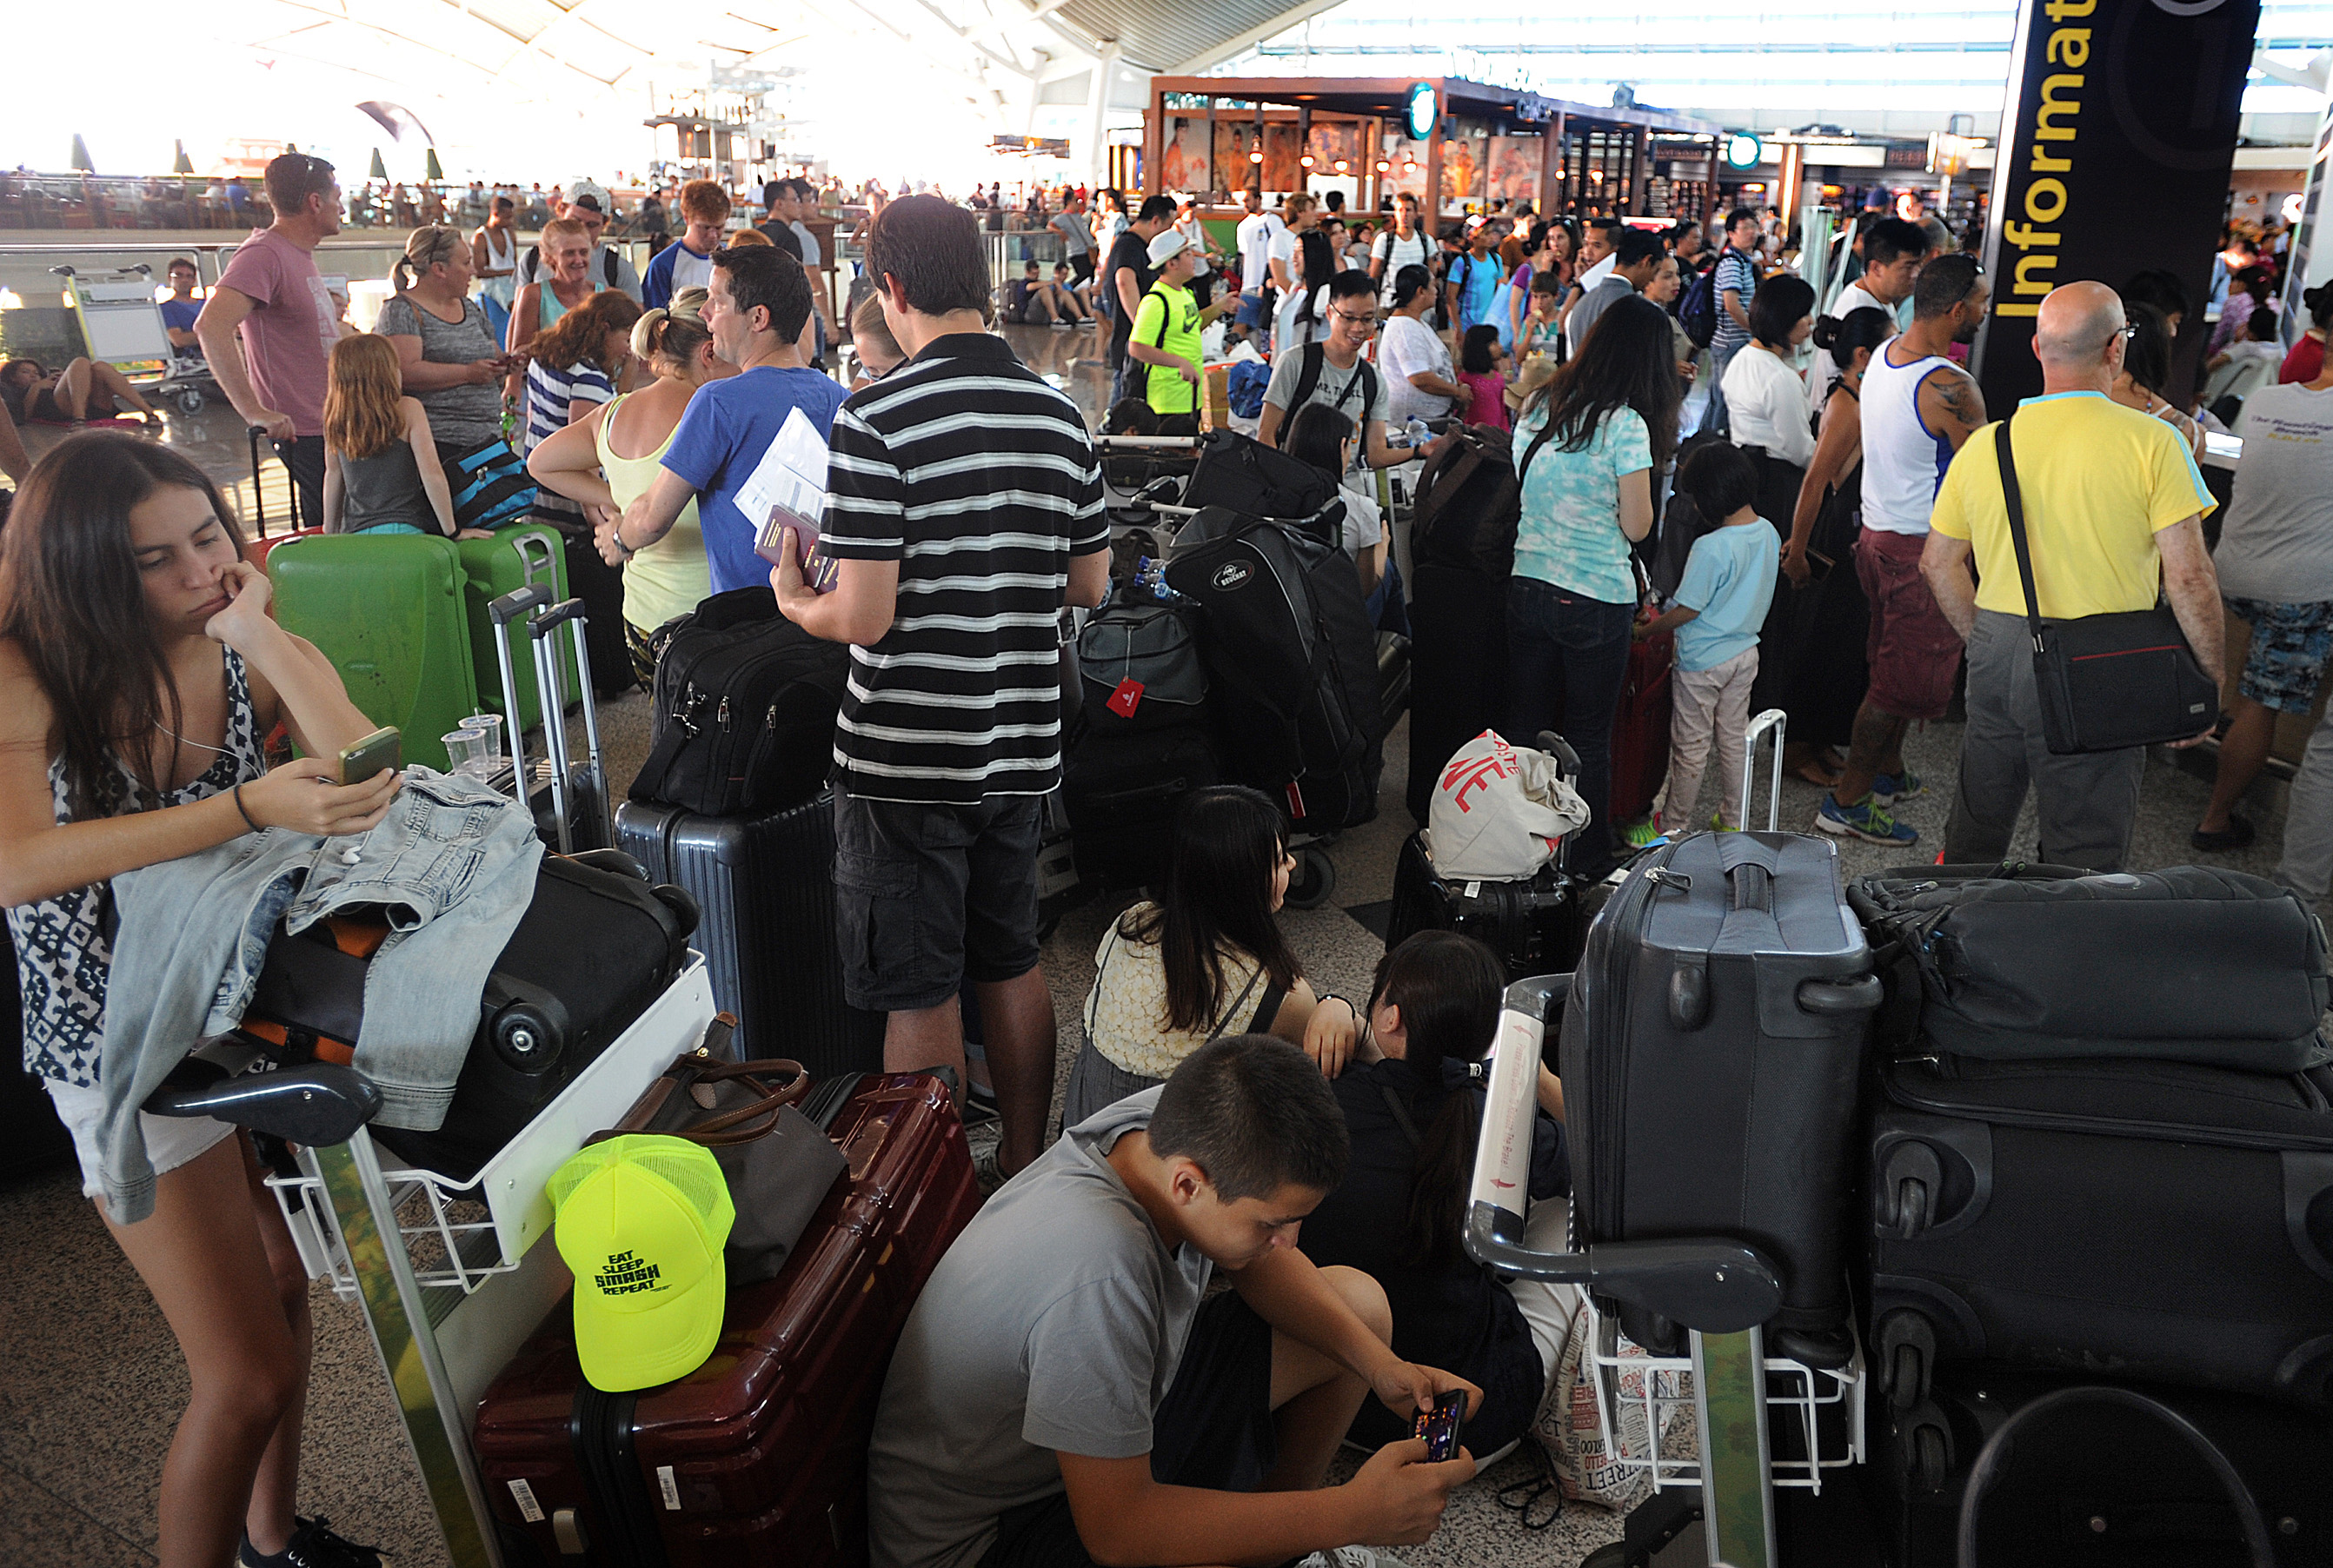 Travelers wait as flights are canceled at Ngurah Rai International Airport in Bali, Indonesia, on July 12, 2015, because of the eruption of Mount Raung in East Java province